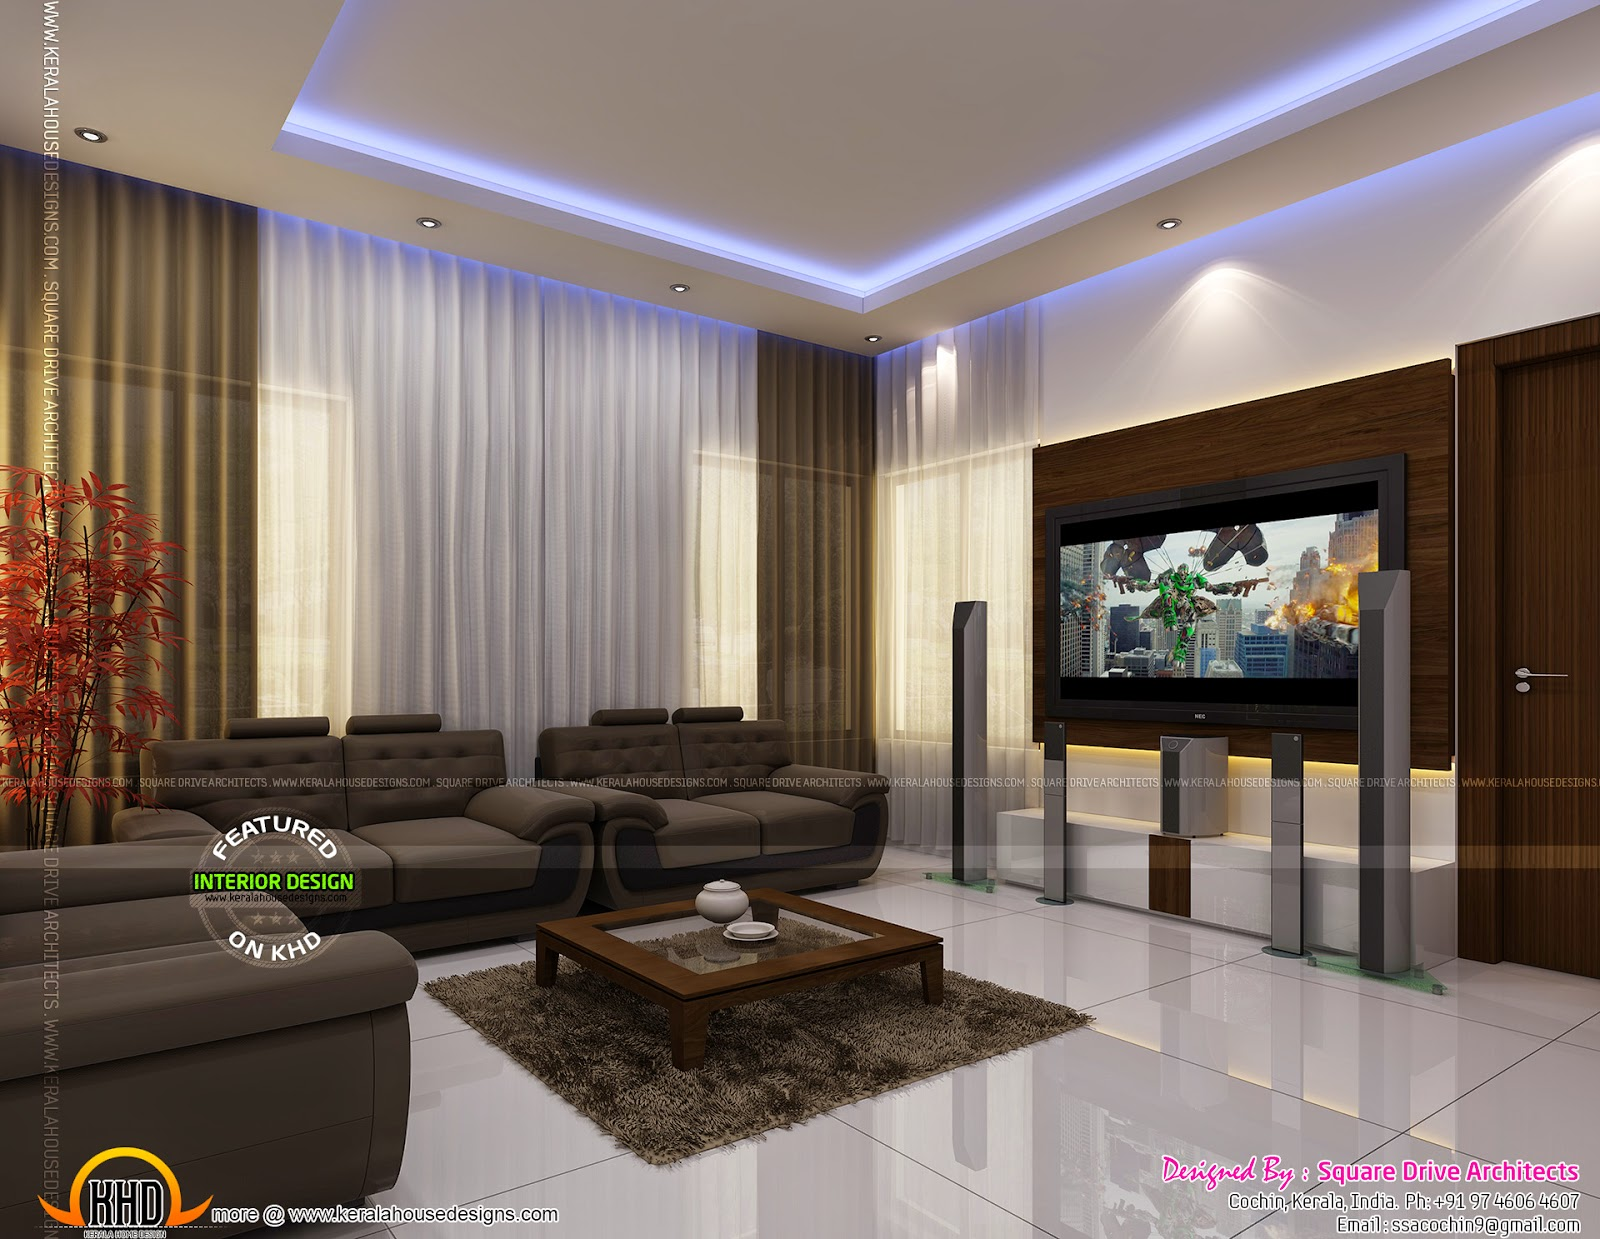 Home interiors designs - Kerala home design and floor plans on kerala home design exterior, kerala house interior design, kerala model house design,